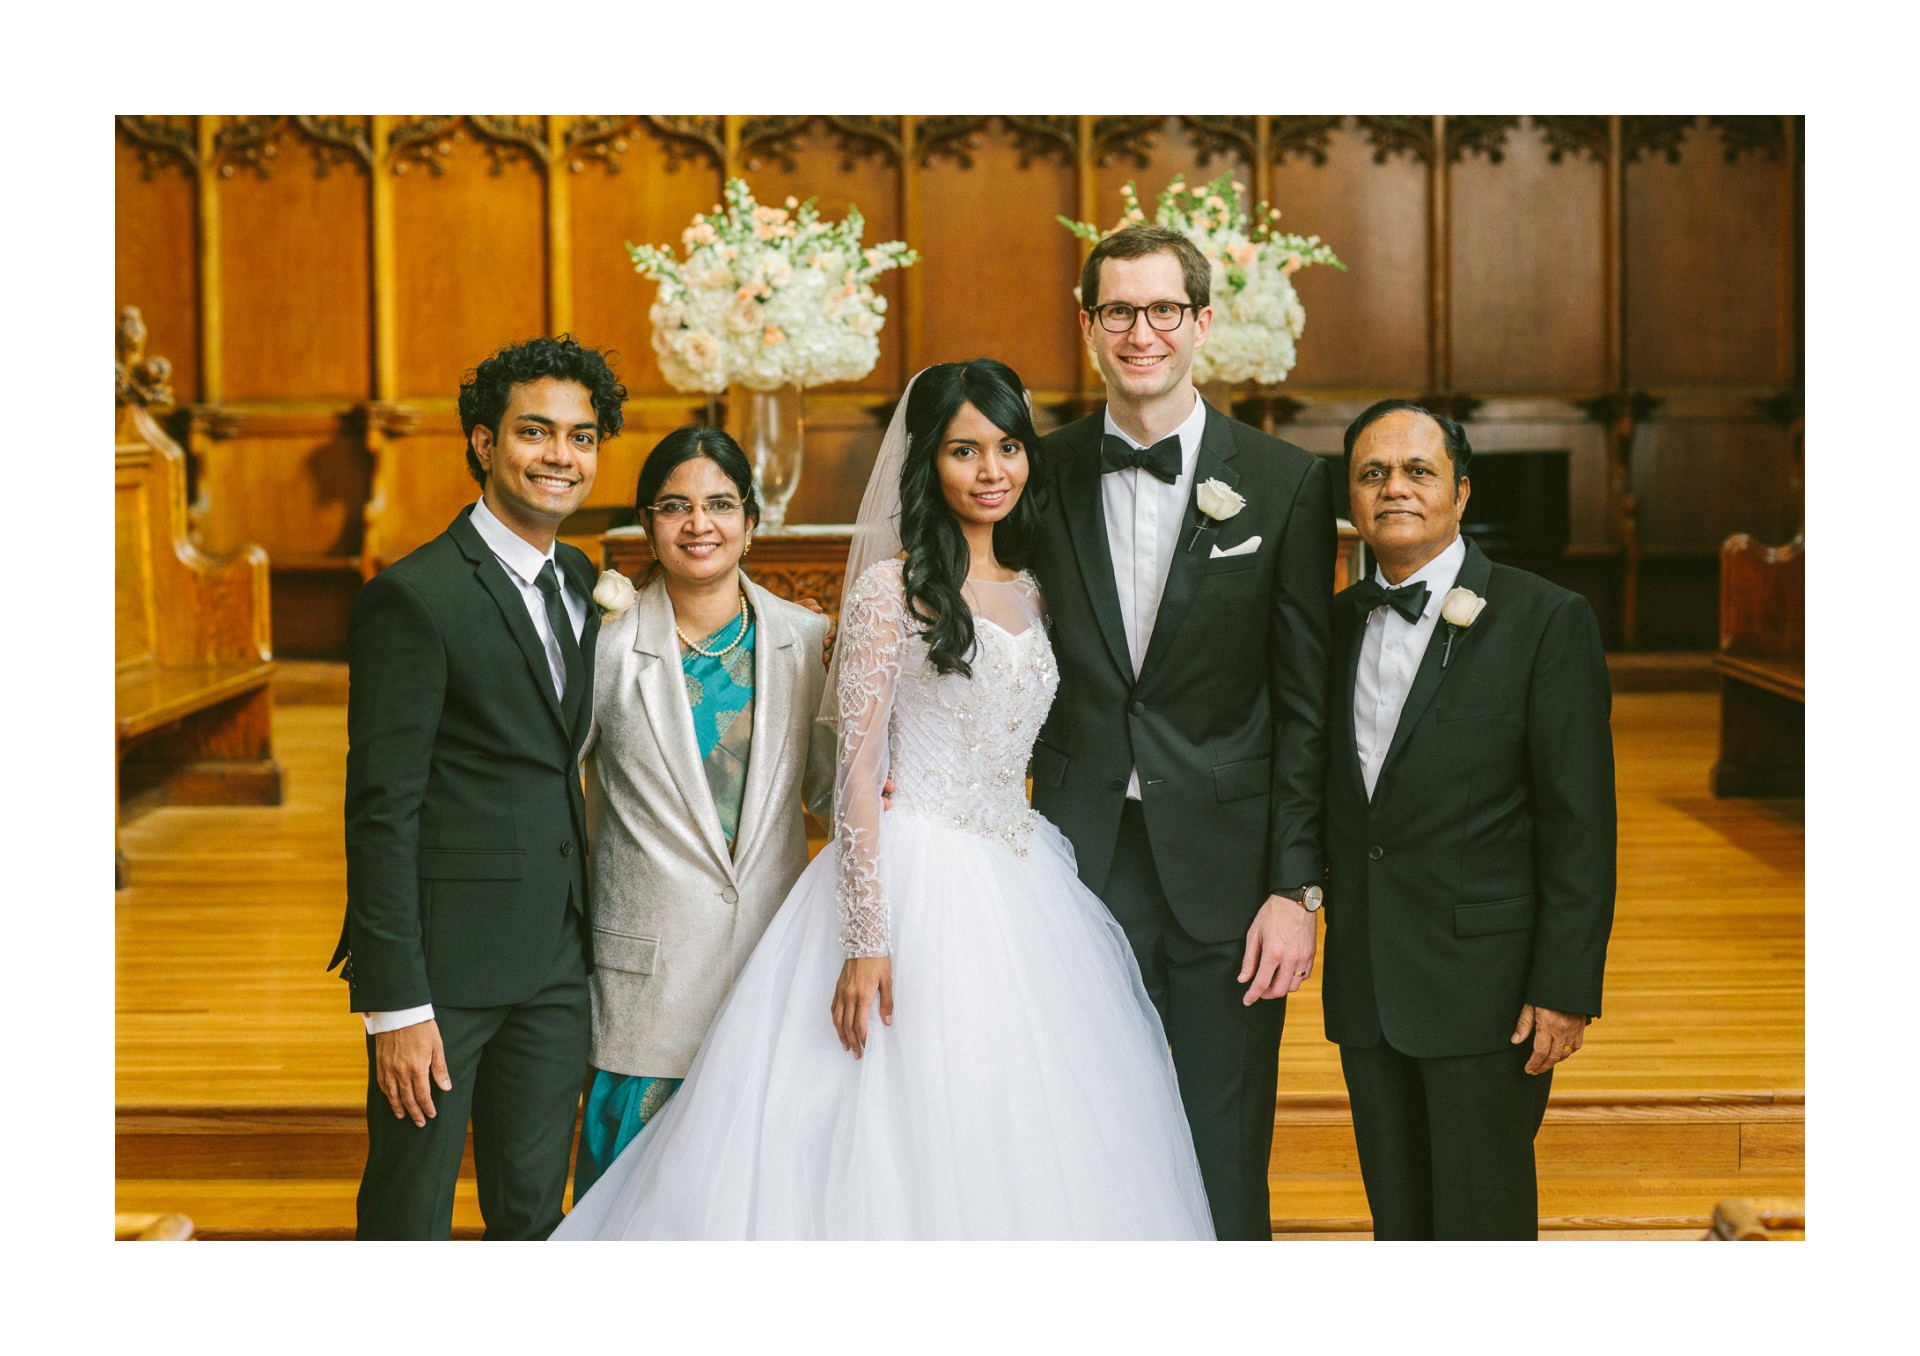 Severance Hall Wedding Photographer in Cleveland 34.jpg